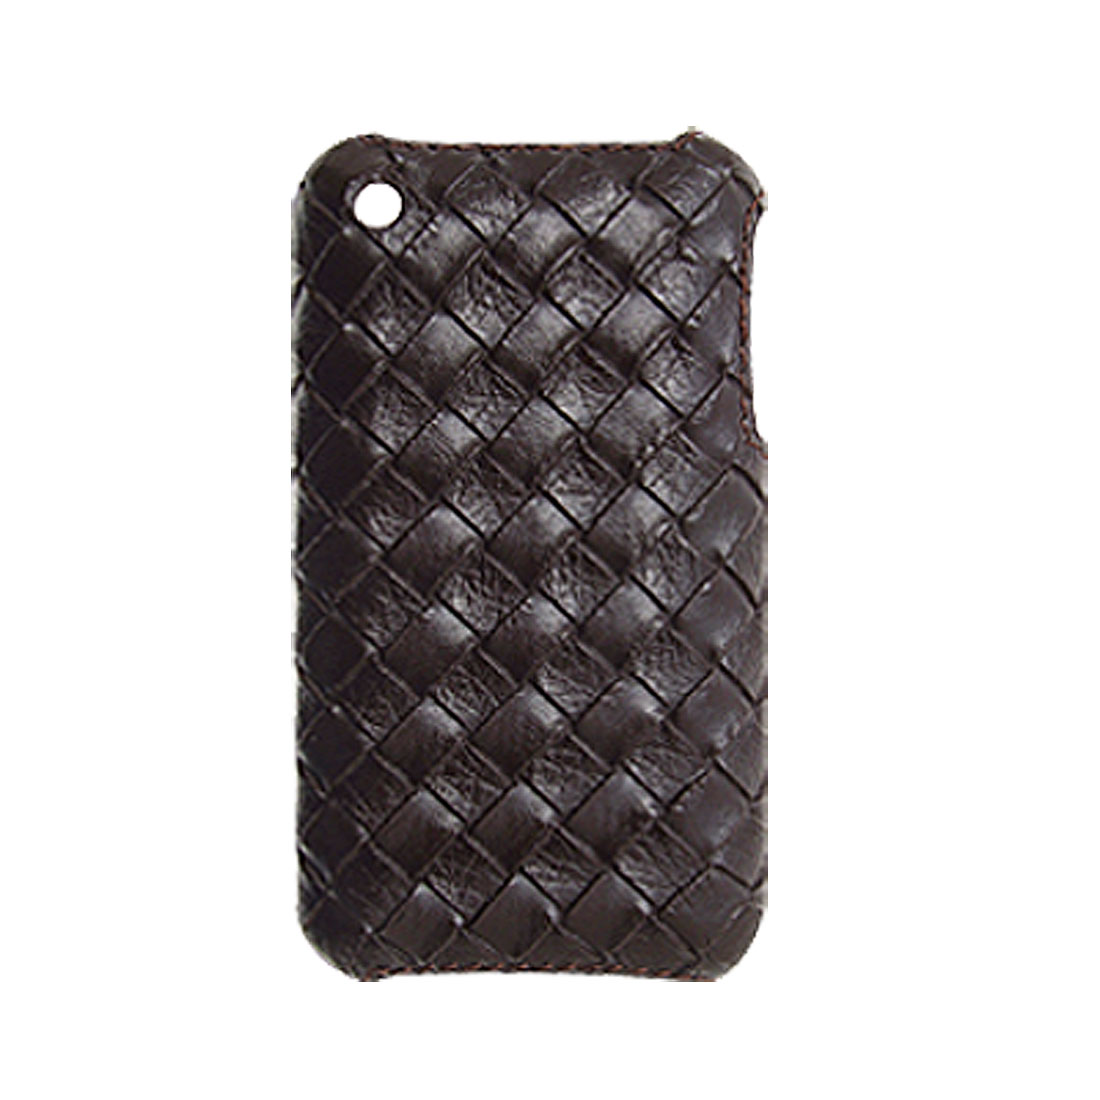 Leather Gridding Coated Plastic Case Cover for iPhone 3G / 3GS